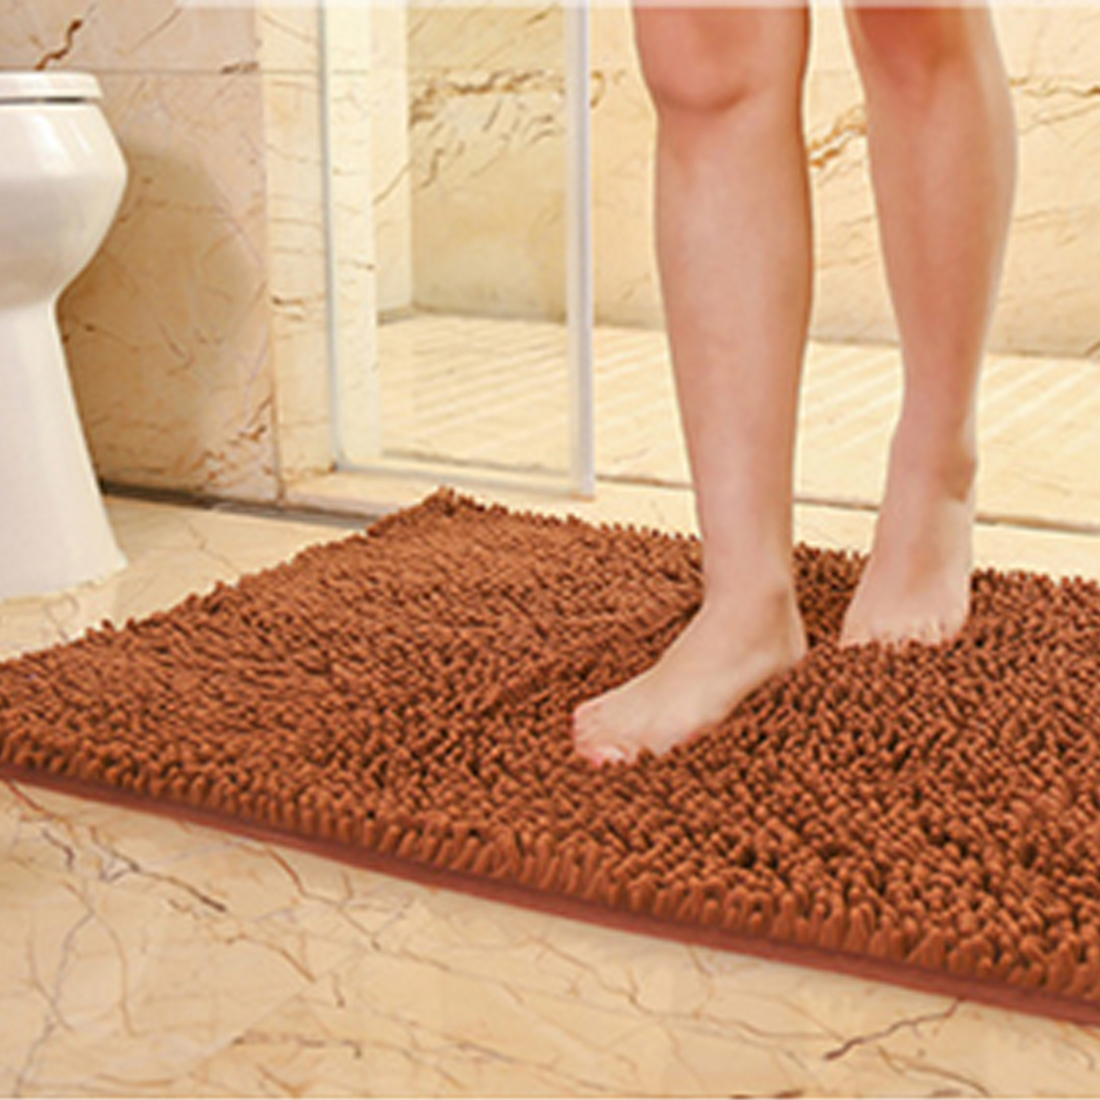 Carpet In A Bathroom: 3 Sizes Bath Mat Bathroom Carpet Bathroom Mat For Toilet